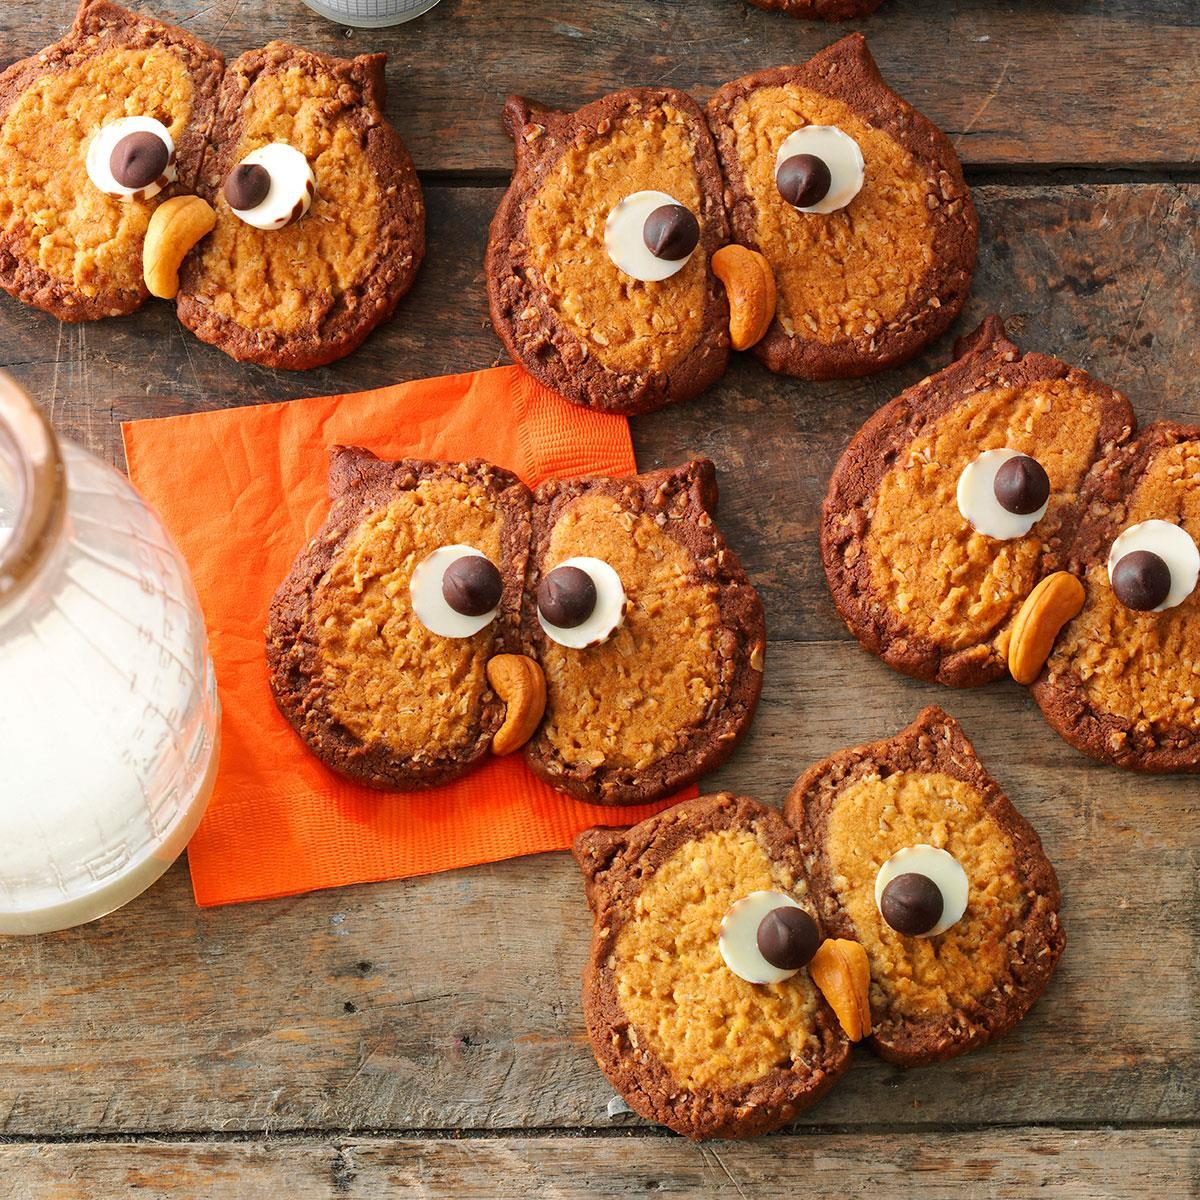 14 Animal-Shaped Foods That Kids Love to Eat